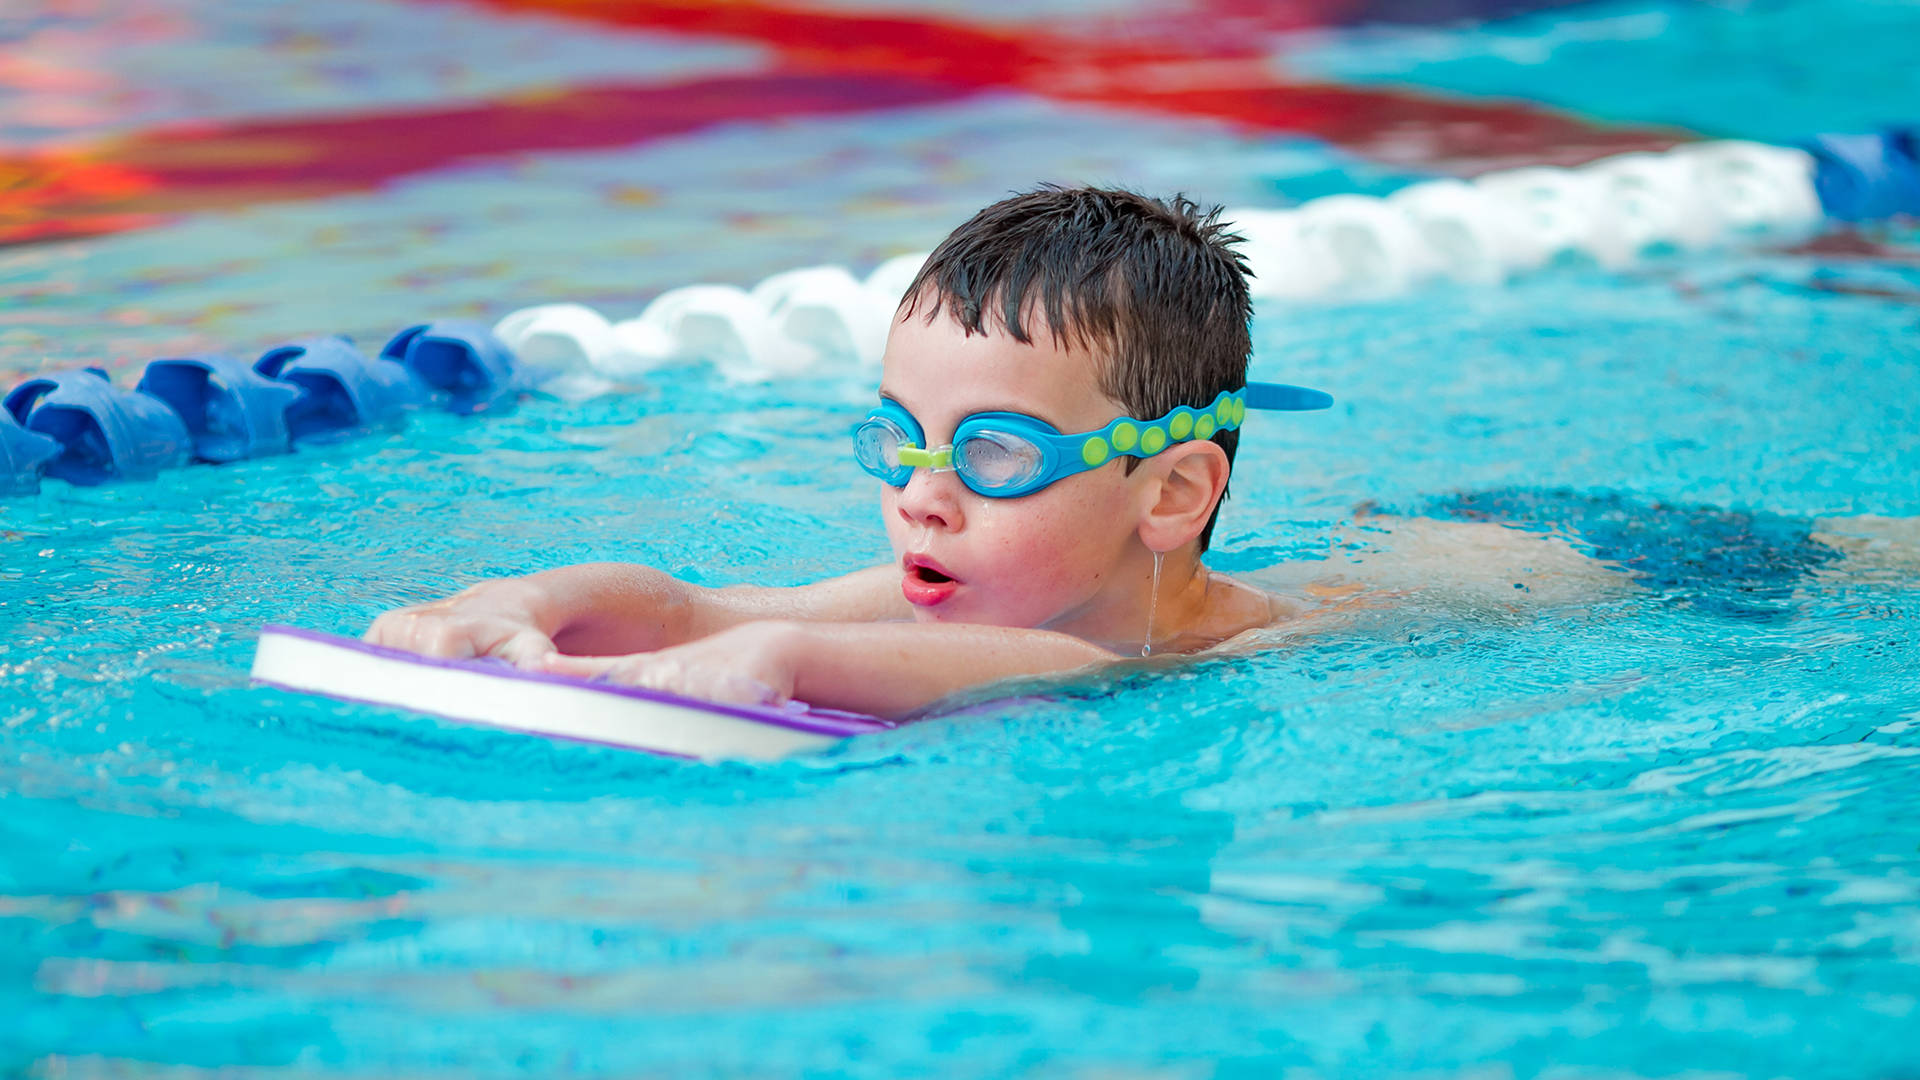 A child learning to swim during a swimming lesson in The Essex's swimming pool